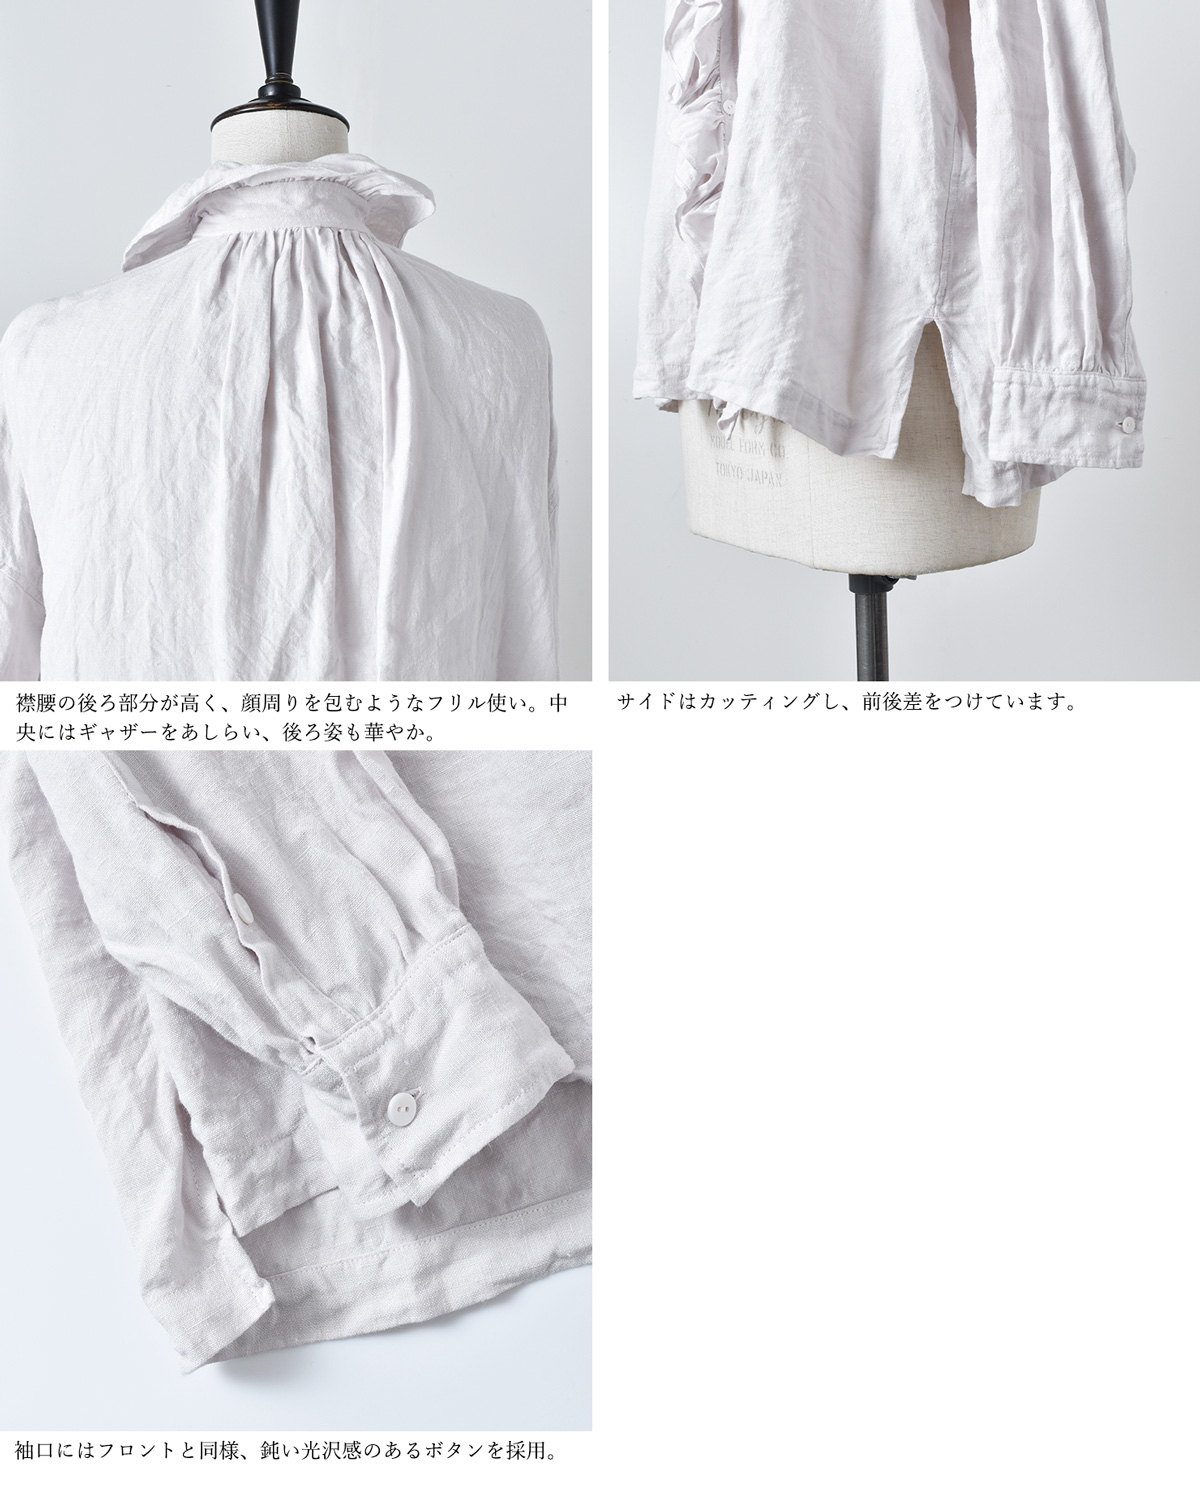 "TOUJOURS(トゥジュー)ベルギーリネンフリルシャツ""Stone Washed Belgian Linen Cloth Ruffle Shirt"" sm34ps01"